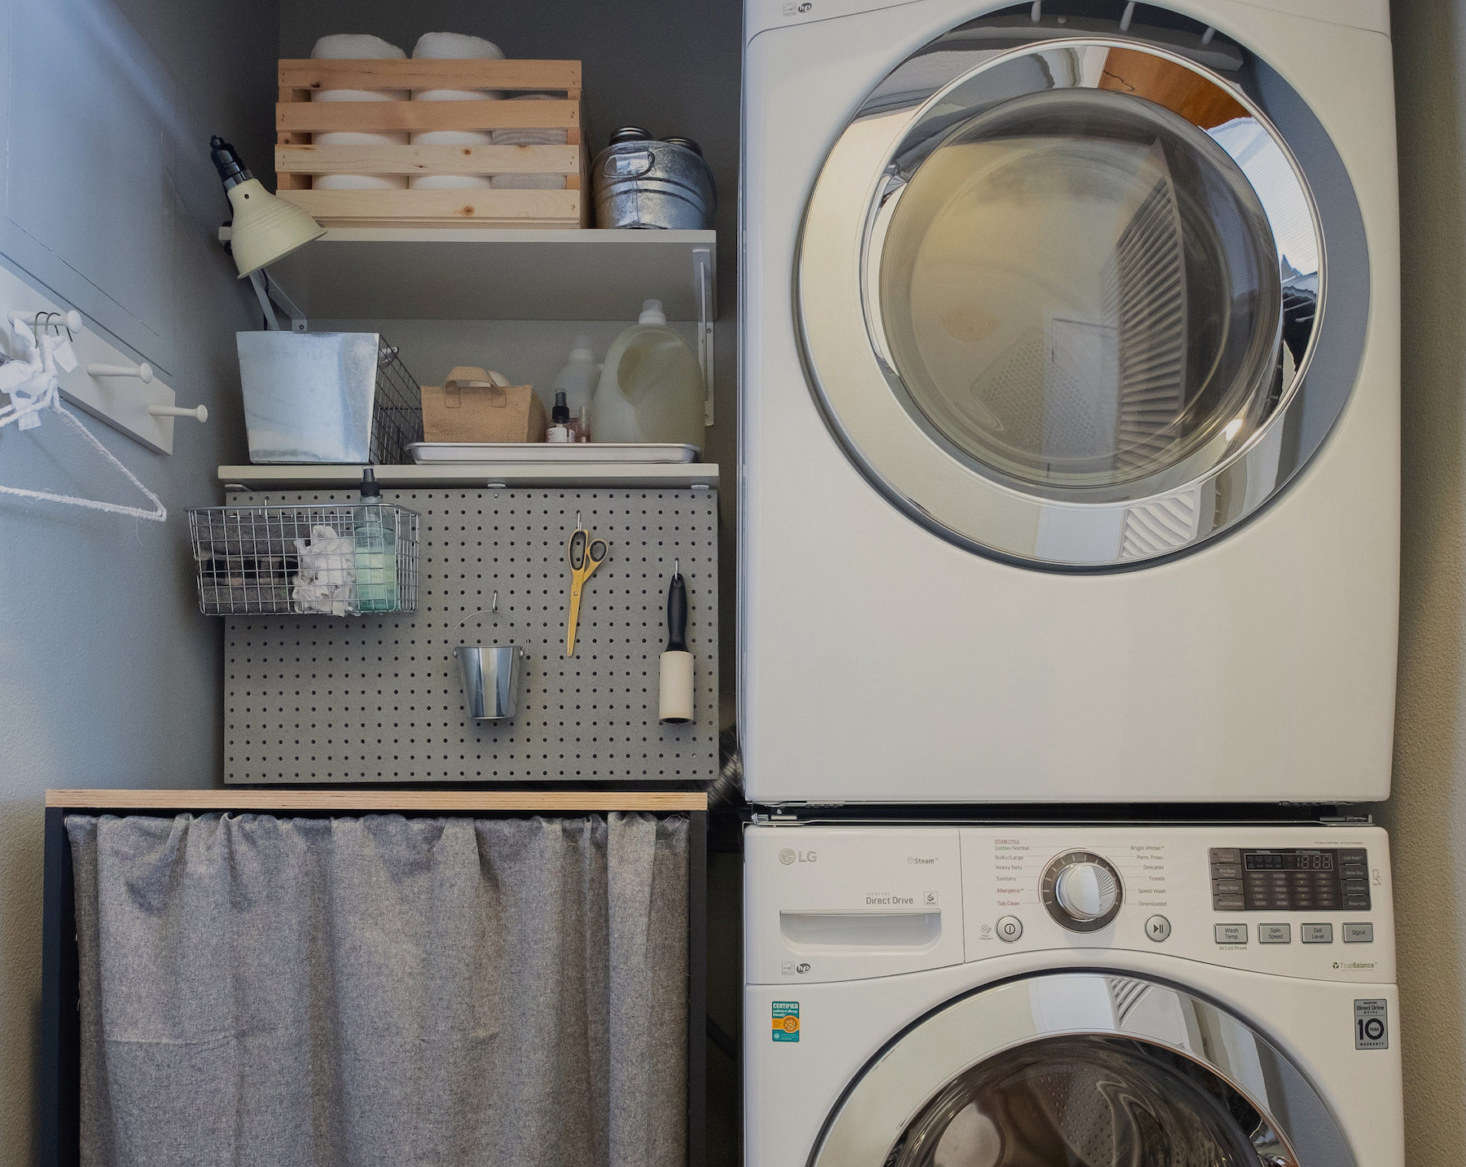 If you have a stacked washer and dryer, you may end up with room to spare in your laundry closet. Here, Meredith added a pegboard and open shelving for extra storage, a countertop for a laundry-folding surface, and a curtain around it to conceal a kitty litter underneath. See the details of her DIY project in Before & After: A Pet-Friendly Overhaul for the Laundry Closet. Photograph by Mahyar Abousaeedi for Remodelista.